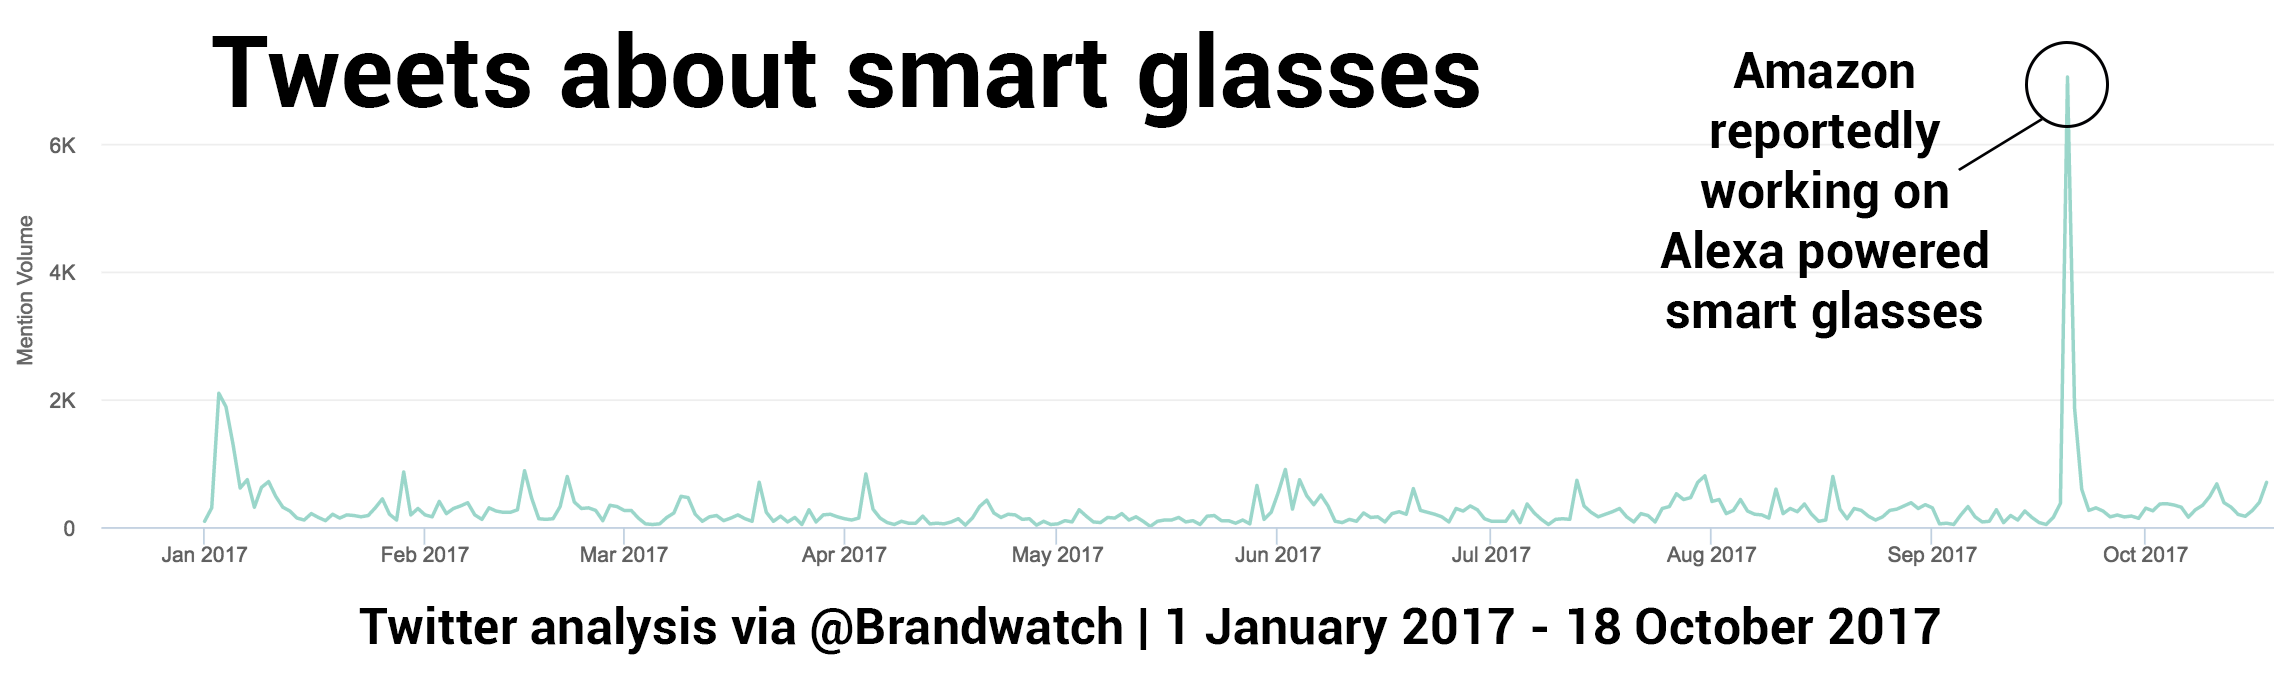 A line chart maps tweeted mentions of smart glasses between 1 January and 18 October 2017. The biggest spike occurs in September when it is reported that Amazon is working on Alexa powered smart glasses.